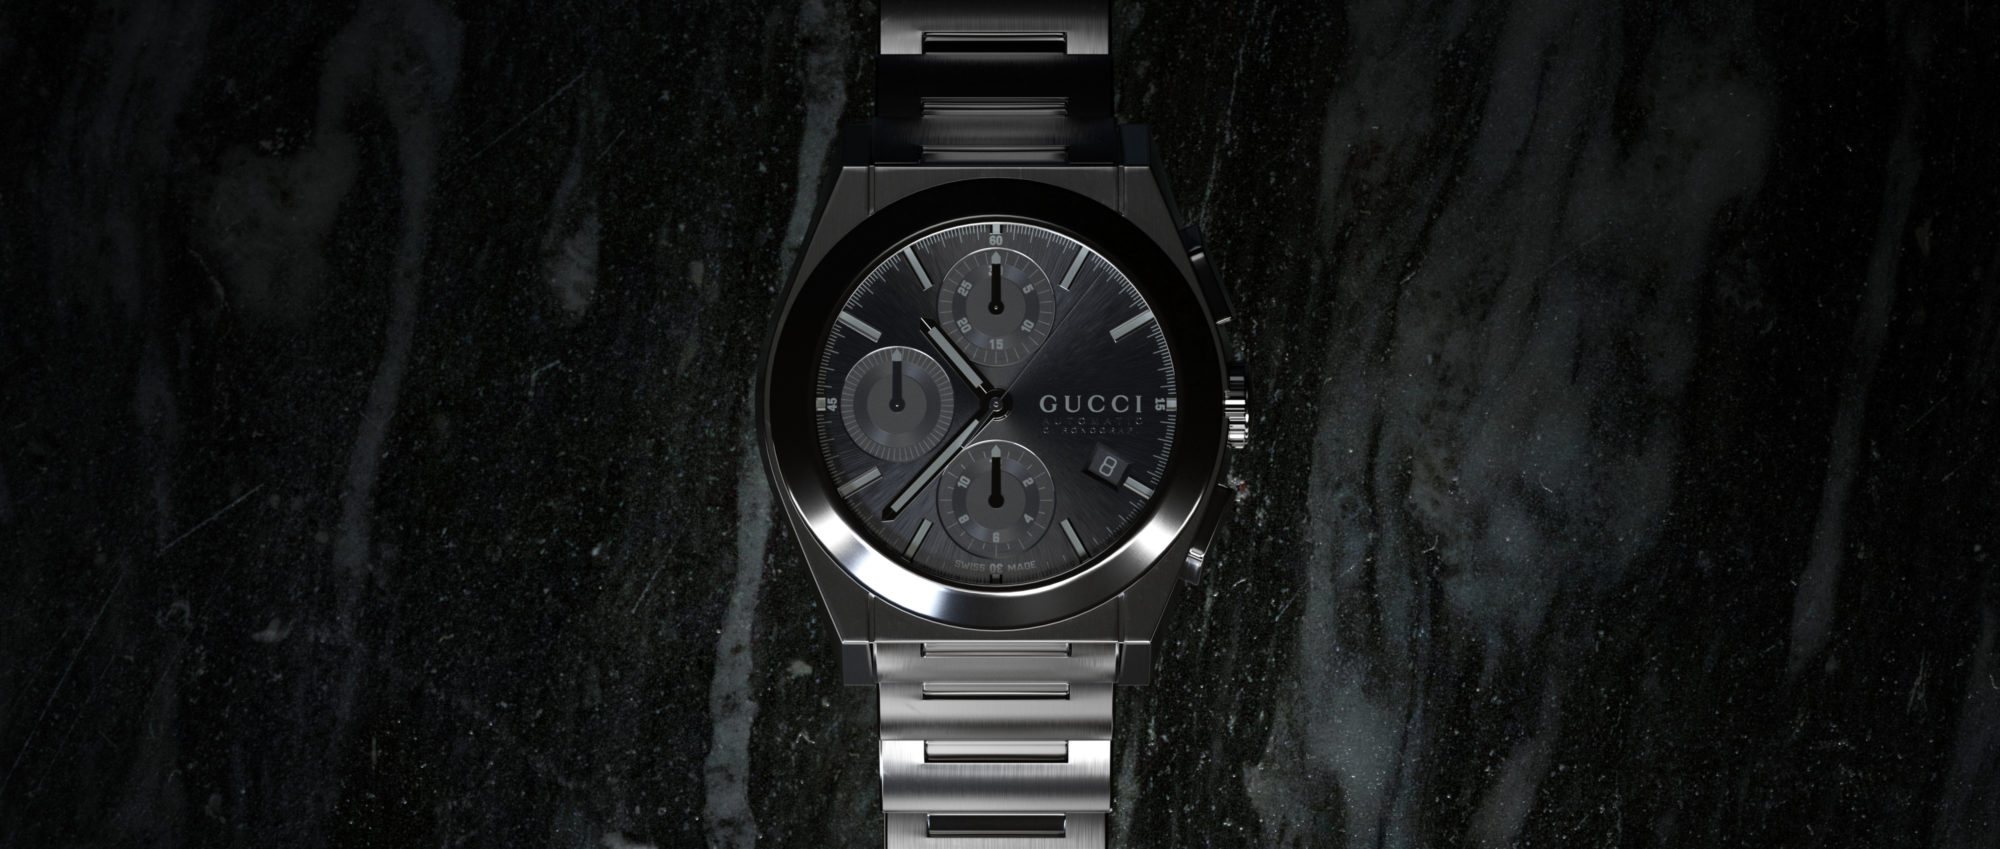 Gucci Watch Gunmetal Marble